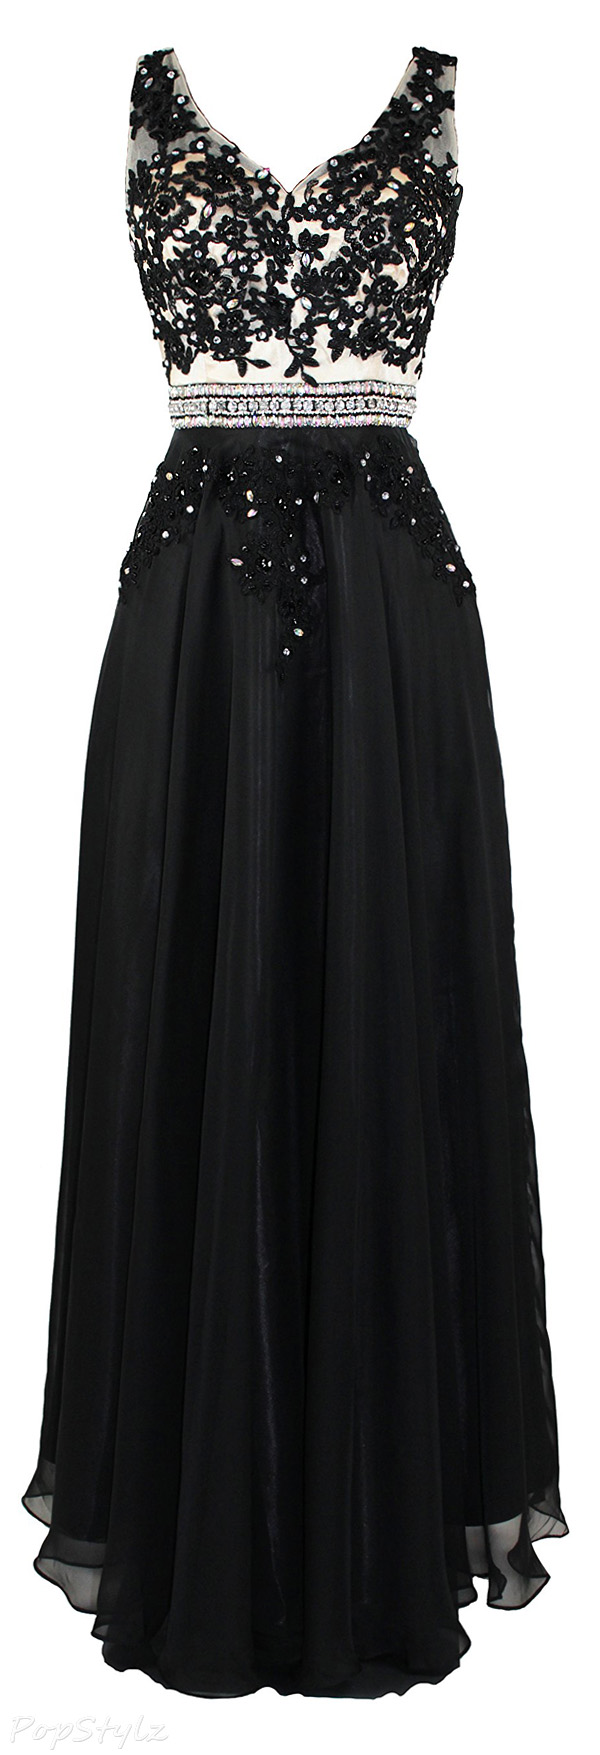 Meier Embroidery Lace Beaded Chiffon Formal Dress